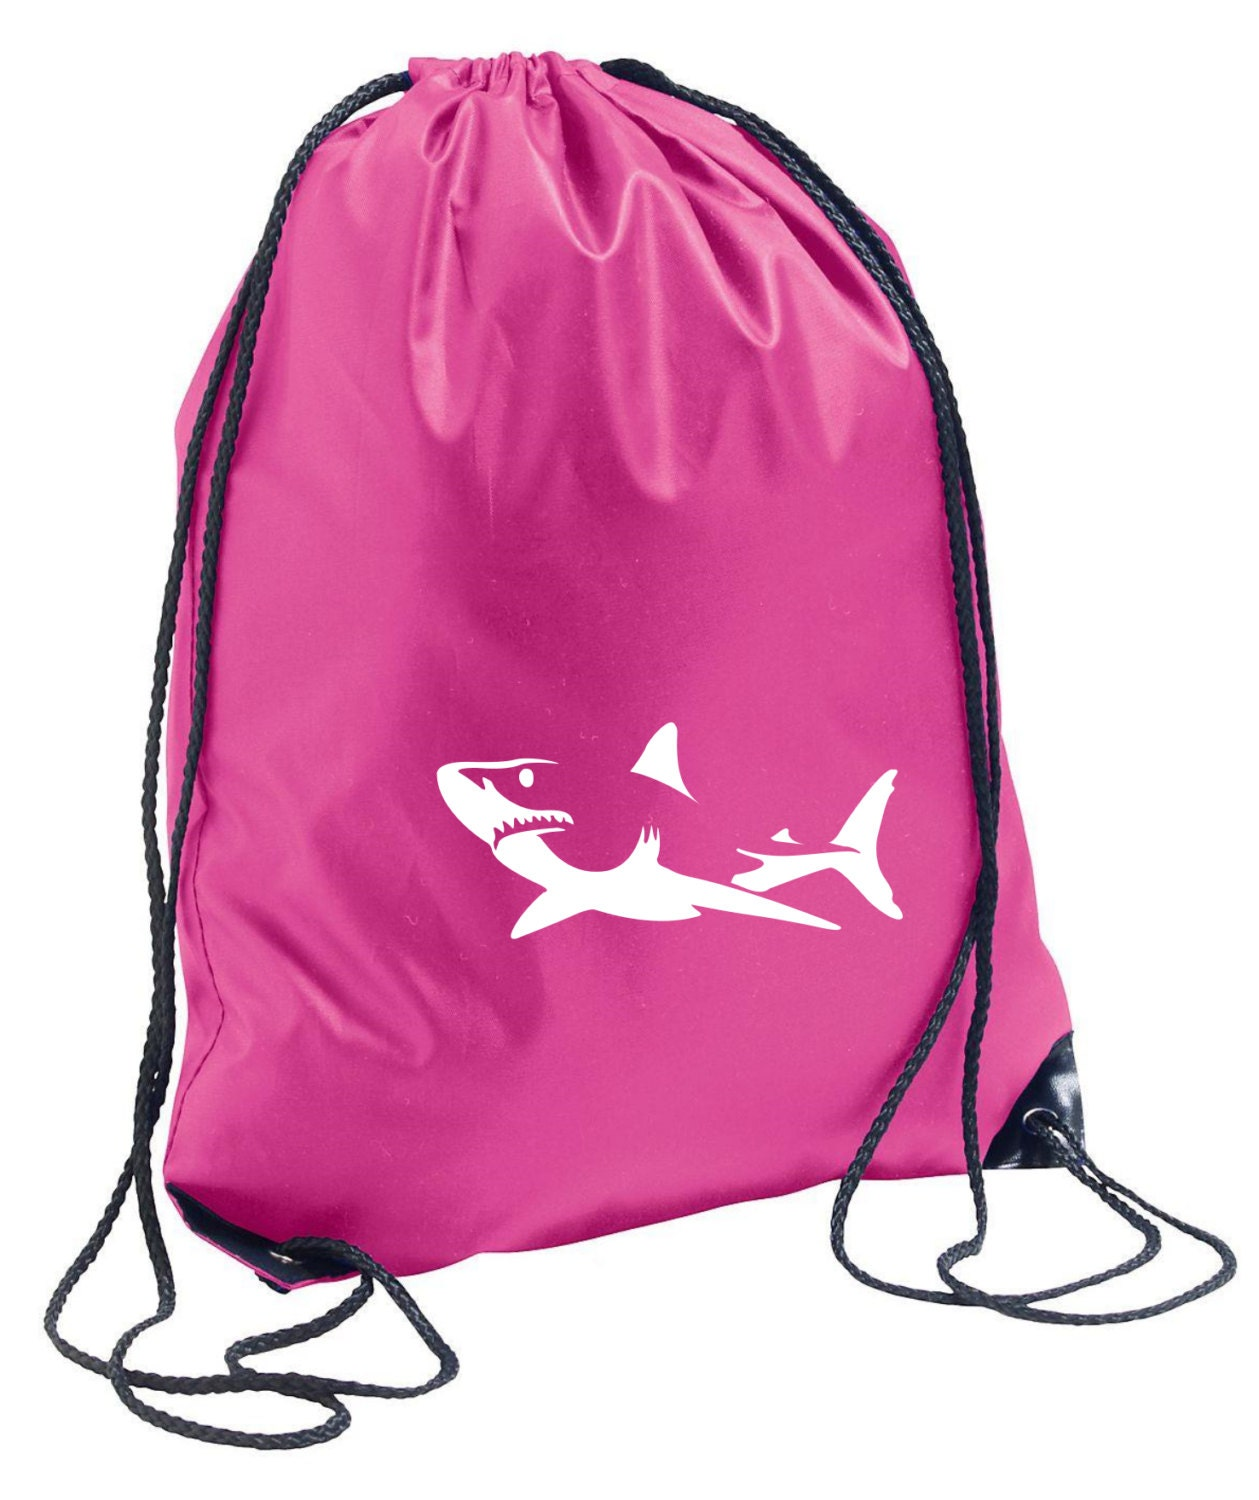 Gym Bag And Backpack: Shark Gym Bag Backpack By ClaudioCrissi On Etsy